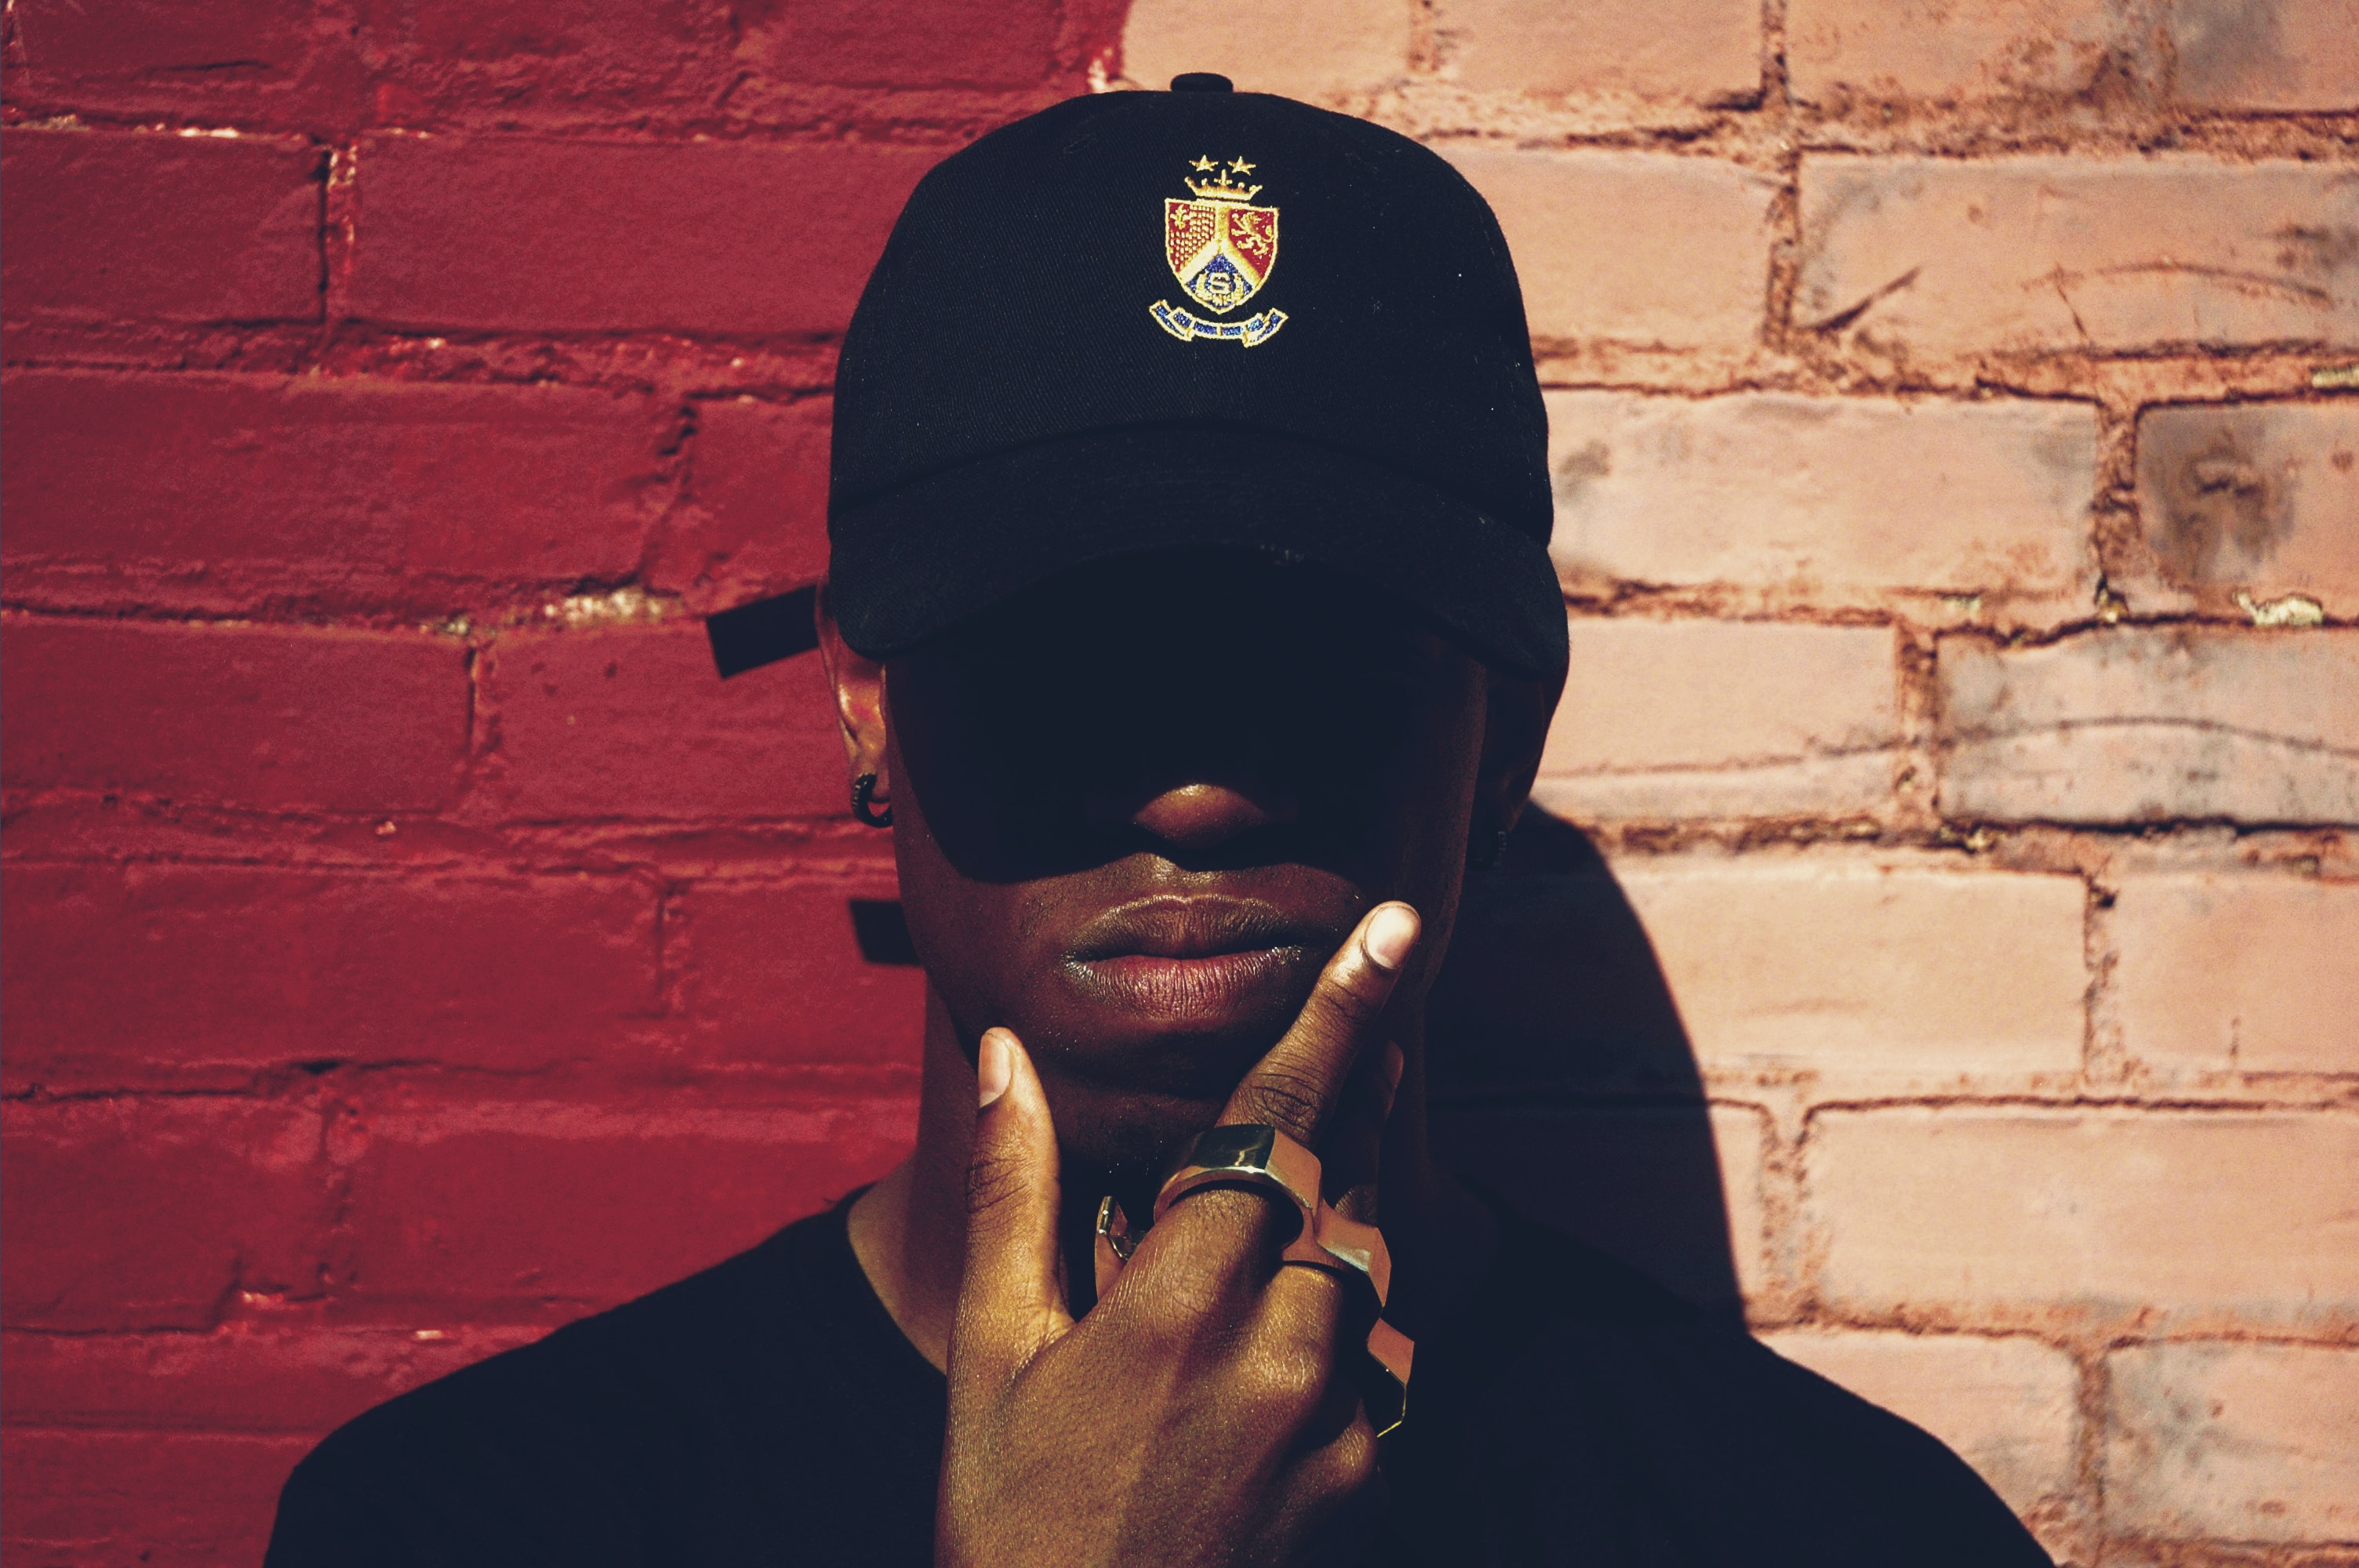 A man wearing a baseball cap, brass knuckles and earrings holding his chin by a brick wall